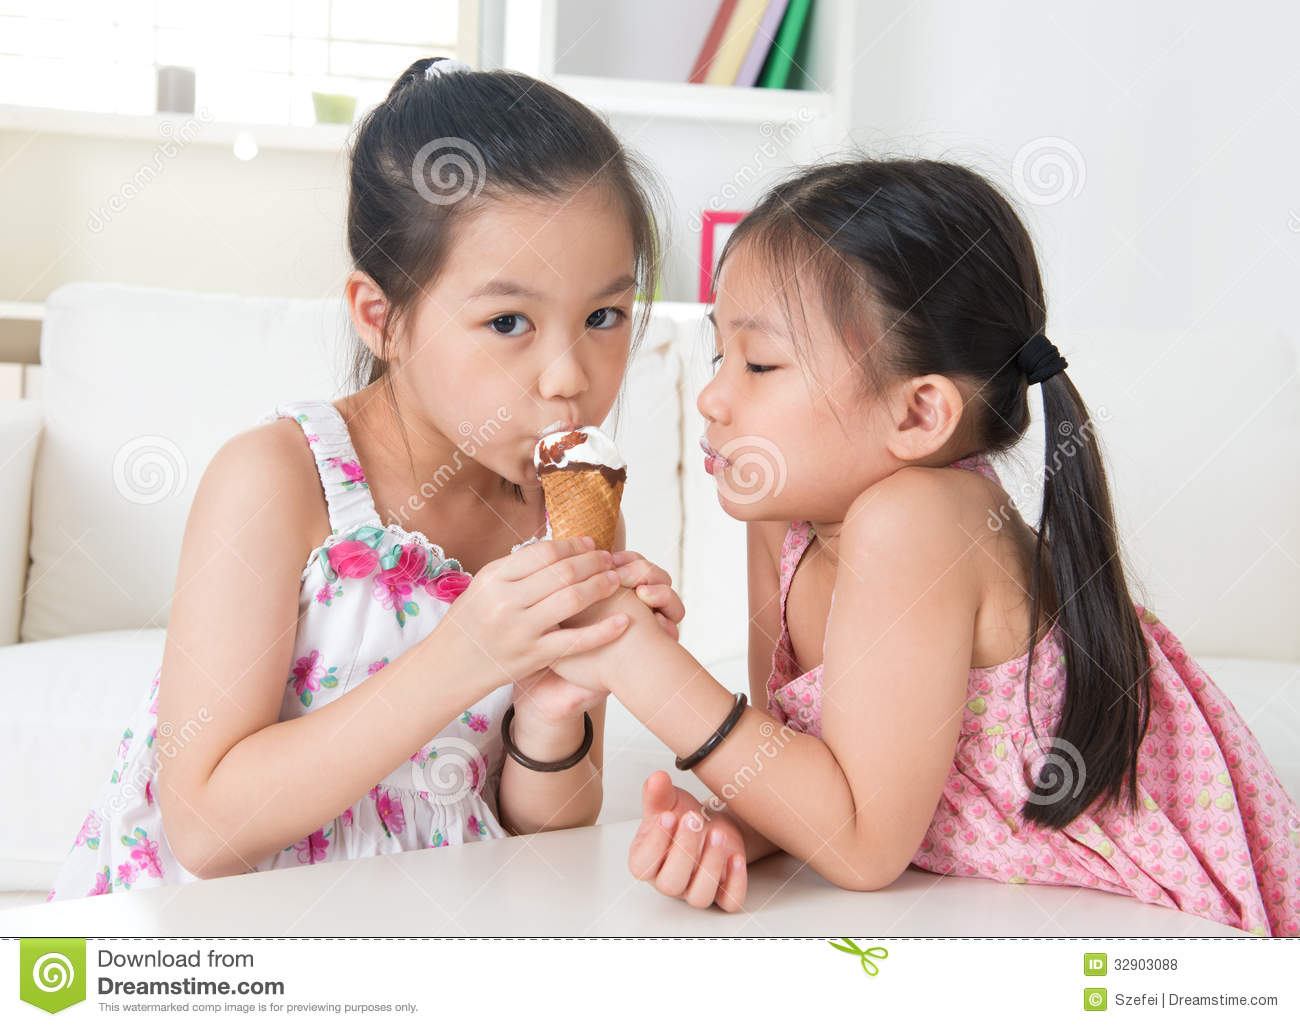 Kids Eatting Ice Cream Cone Vector